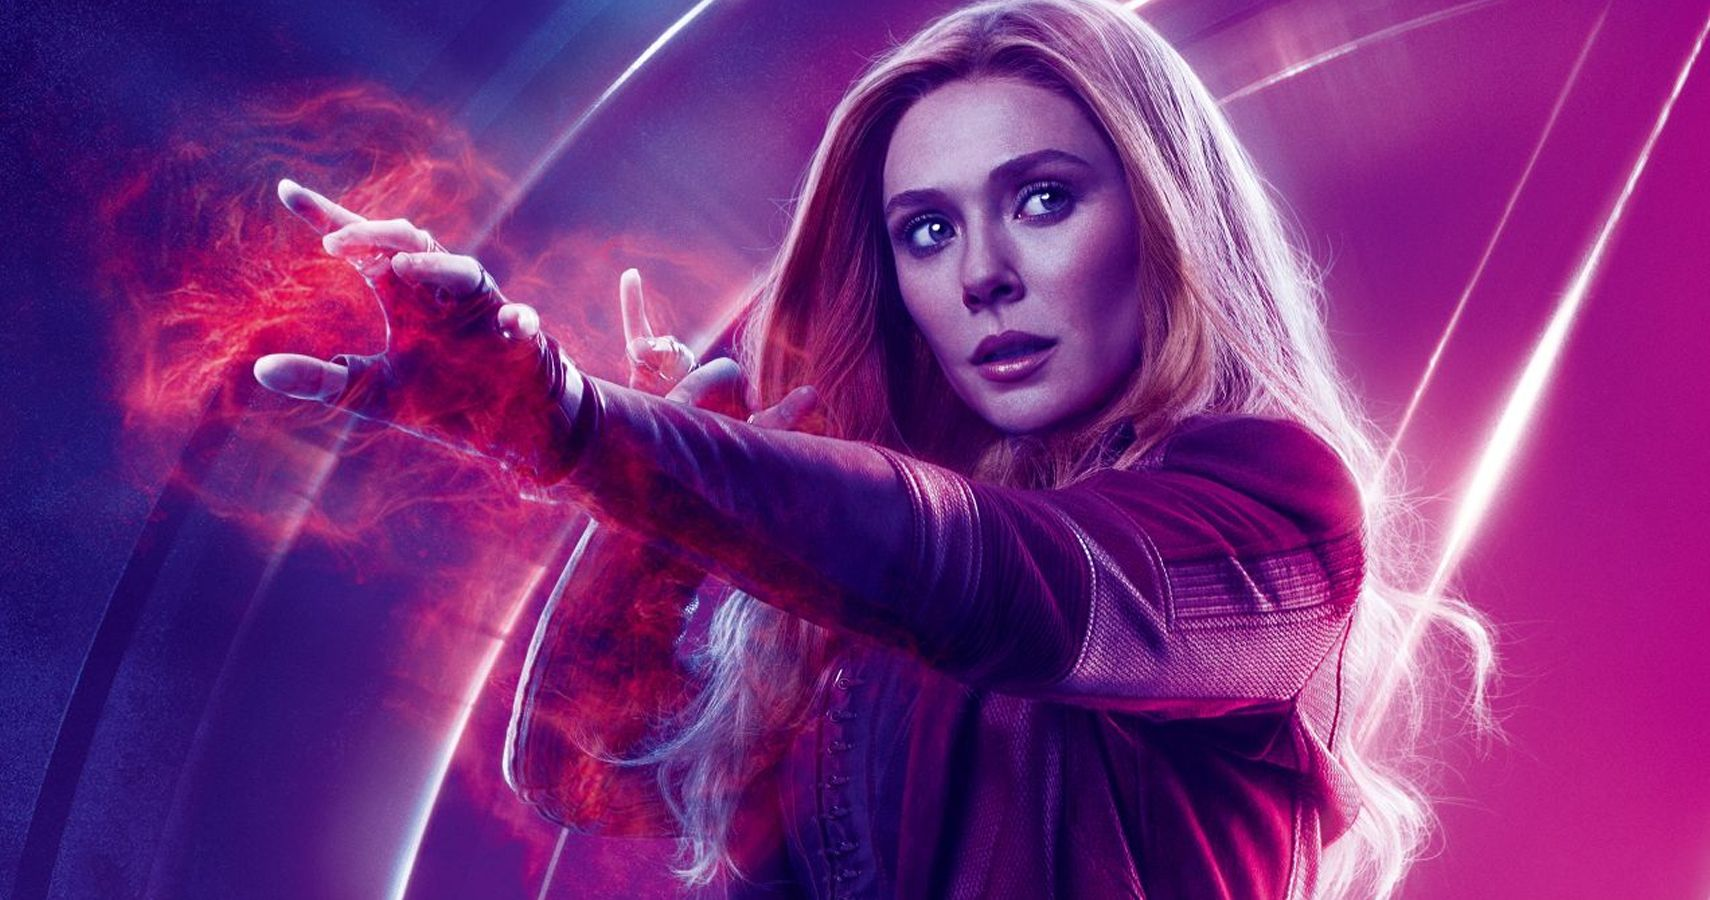 House Of M: 25 Superpowers Scarlet Witch Has That Are Kept